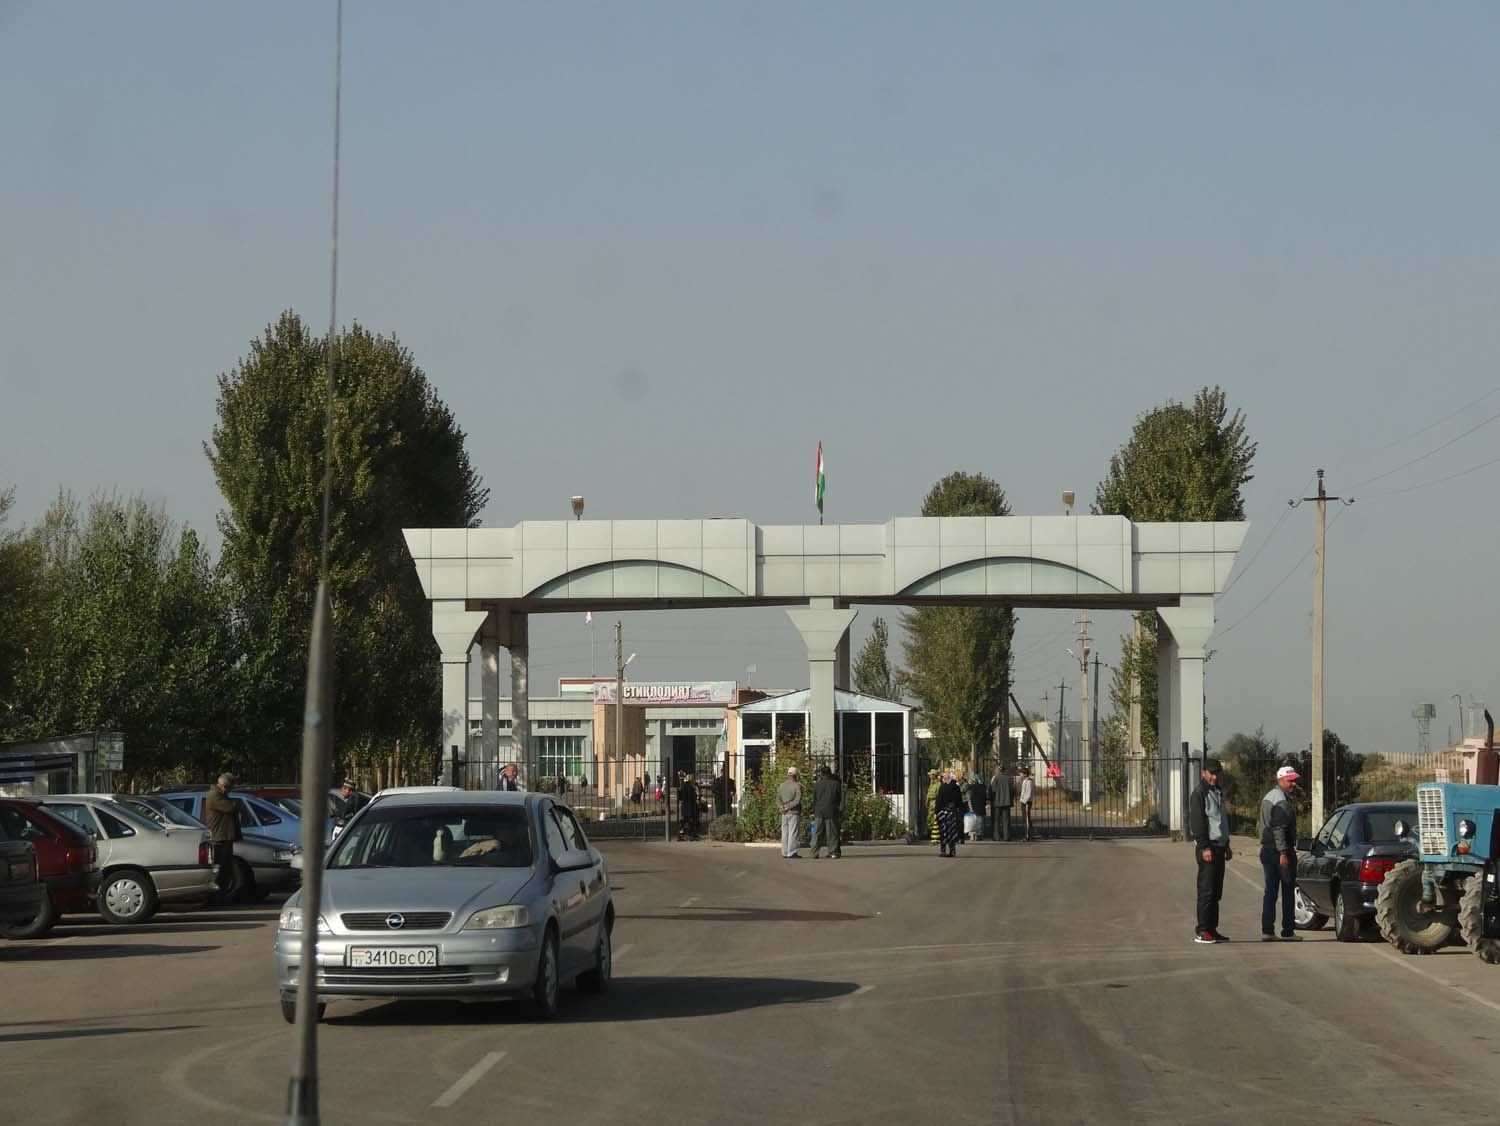 arriving at the Tajikistan side of the border from Khojand, the gate is closed but opened as soon as you arrive